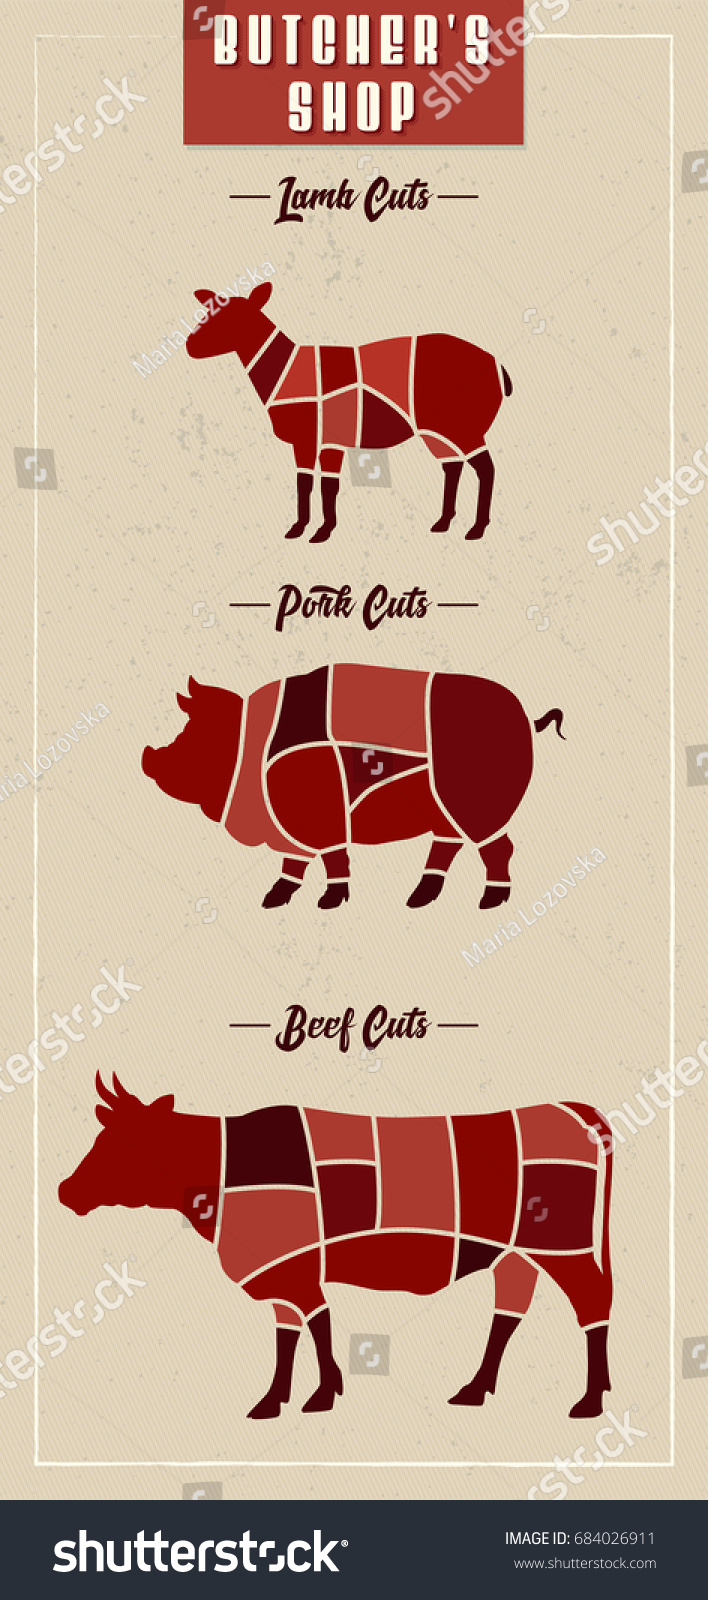 How To Buy Meat Guide Cuts Of Beef Pork And Lamb Parts Basics